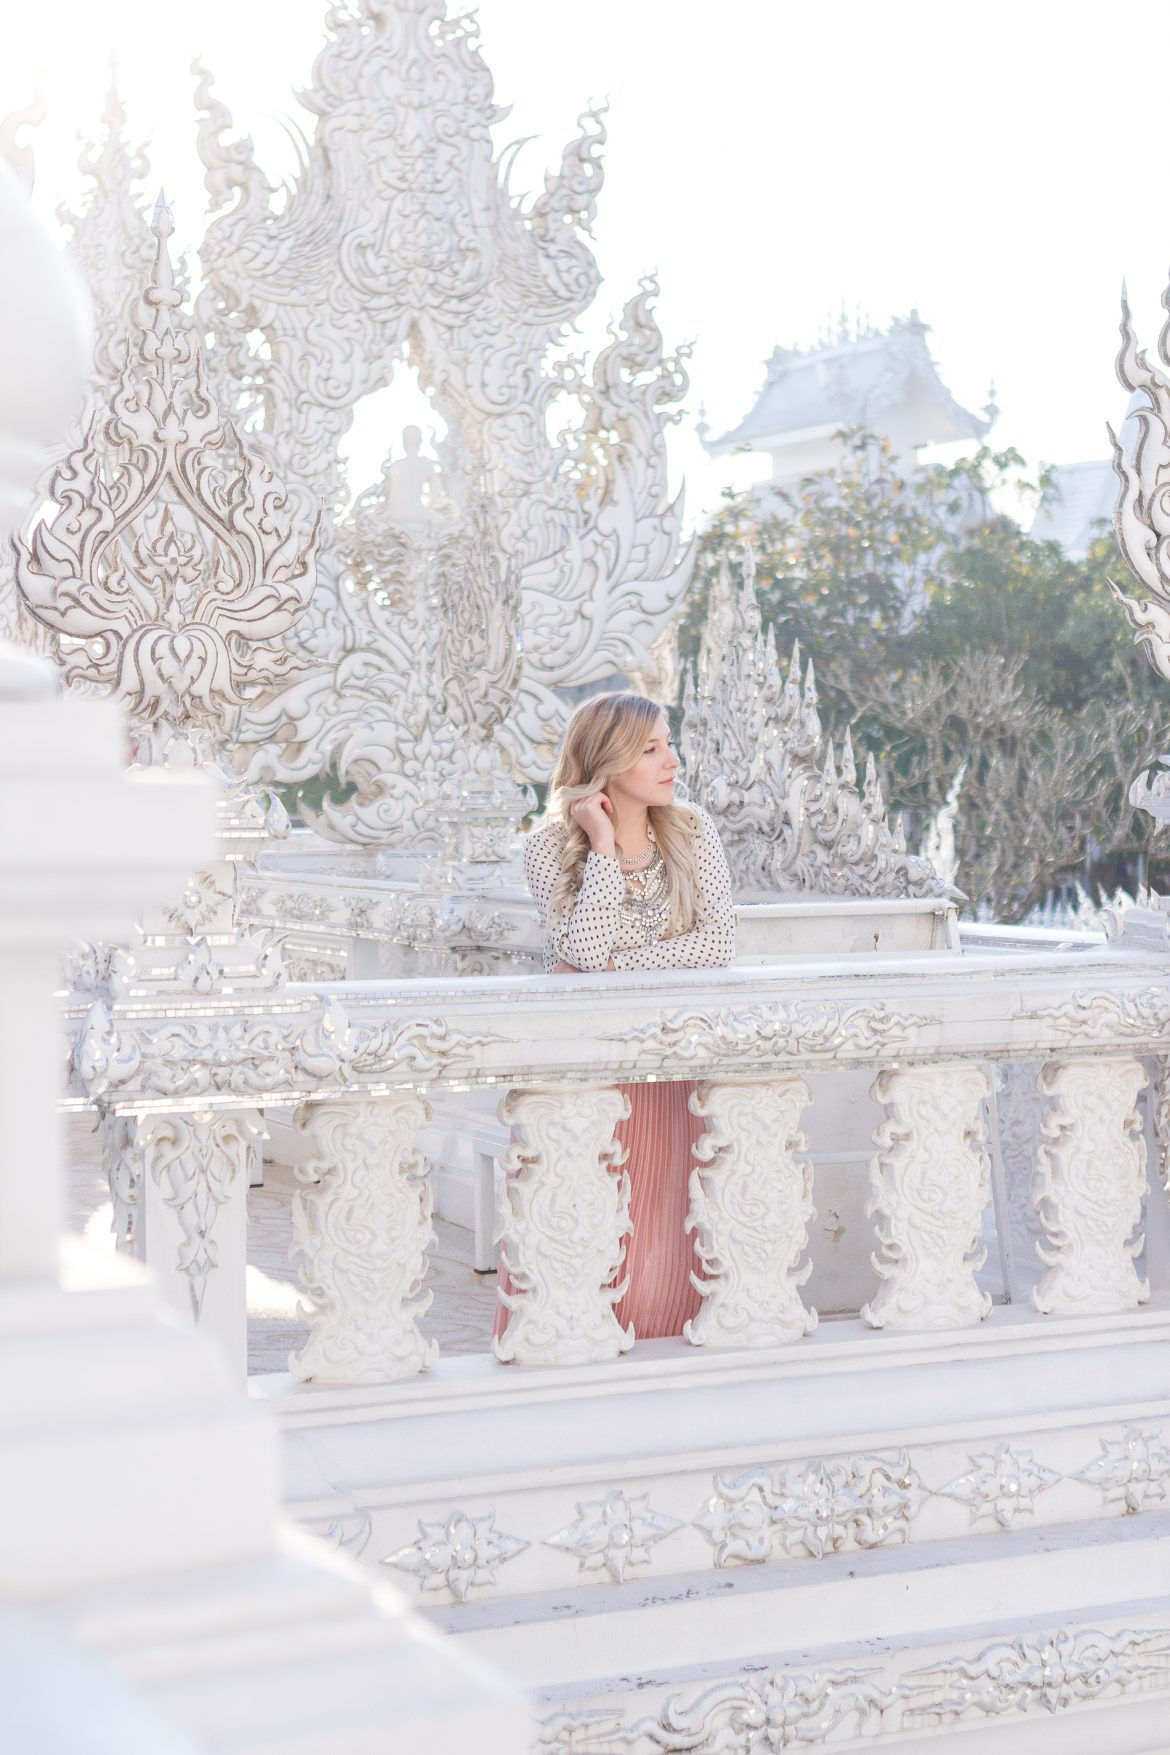 Tips for visiting Wat Rong Khun - the White Temple in Chiang Rai Thailand